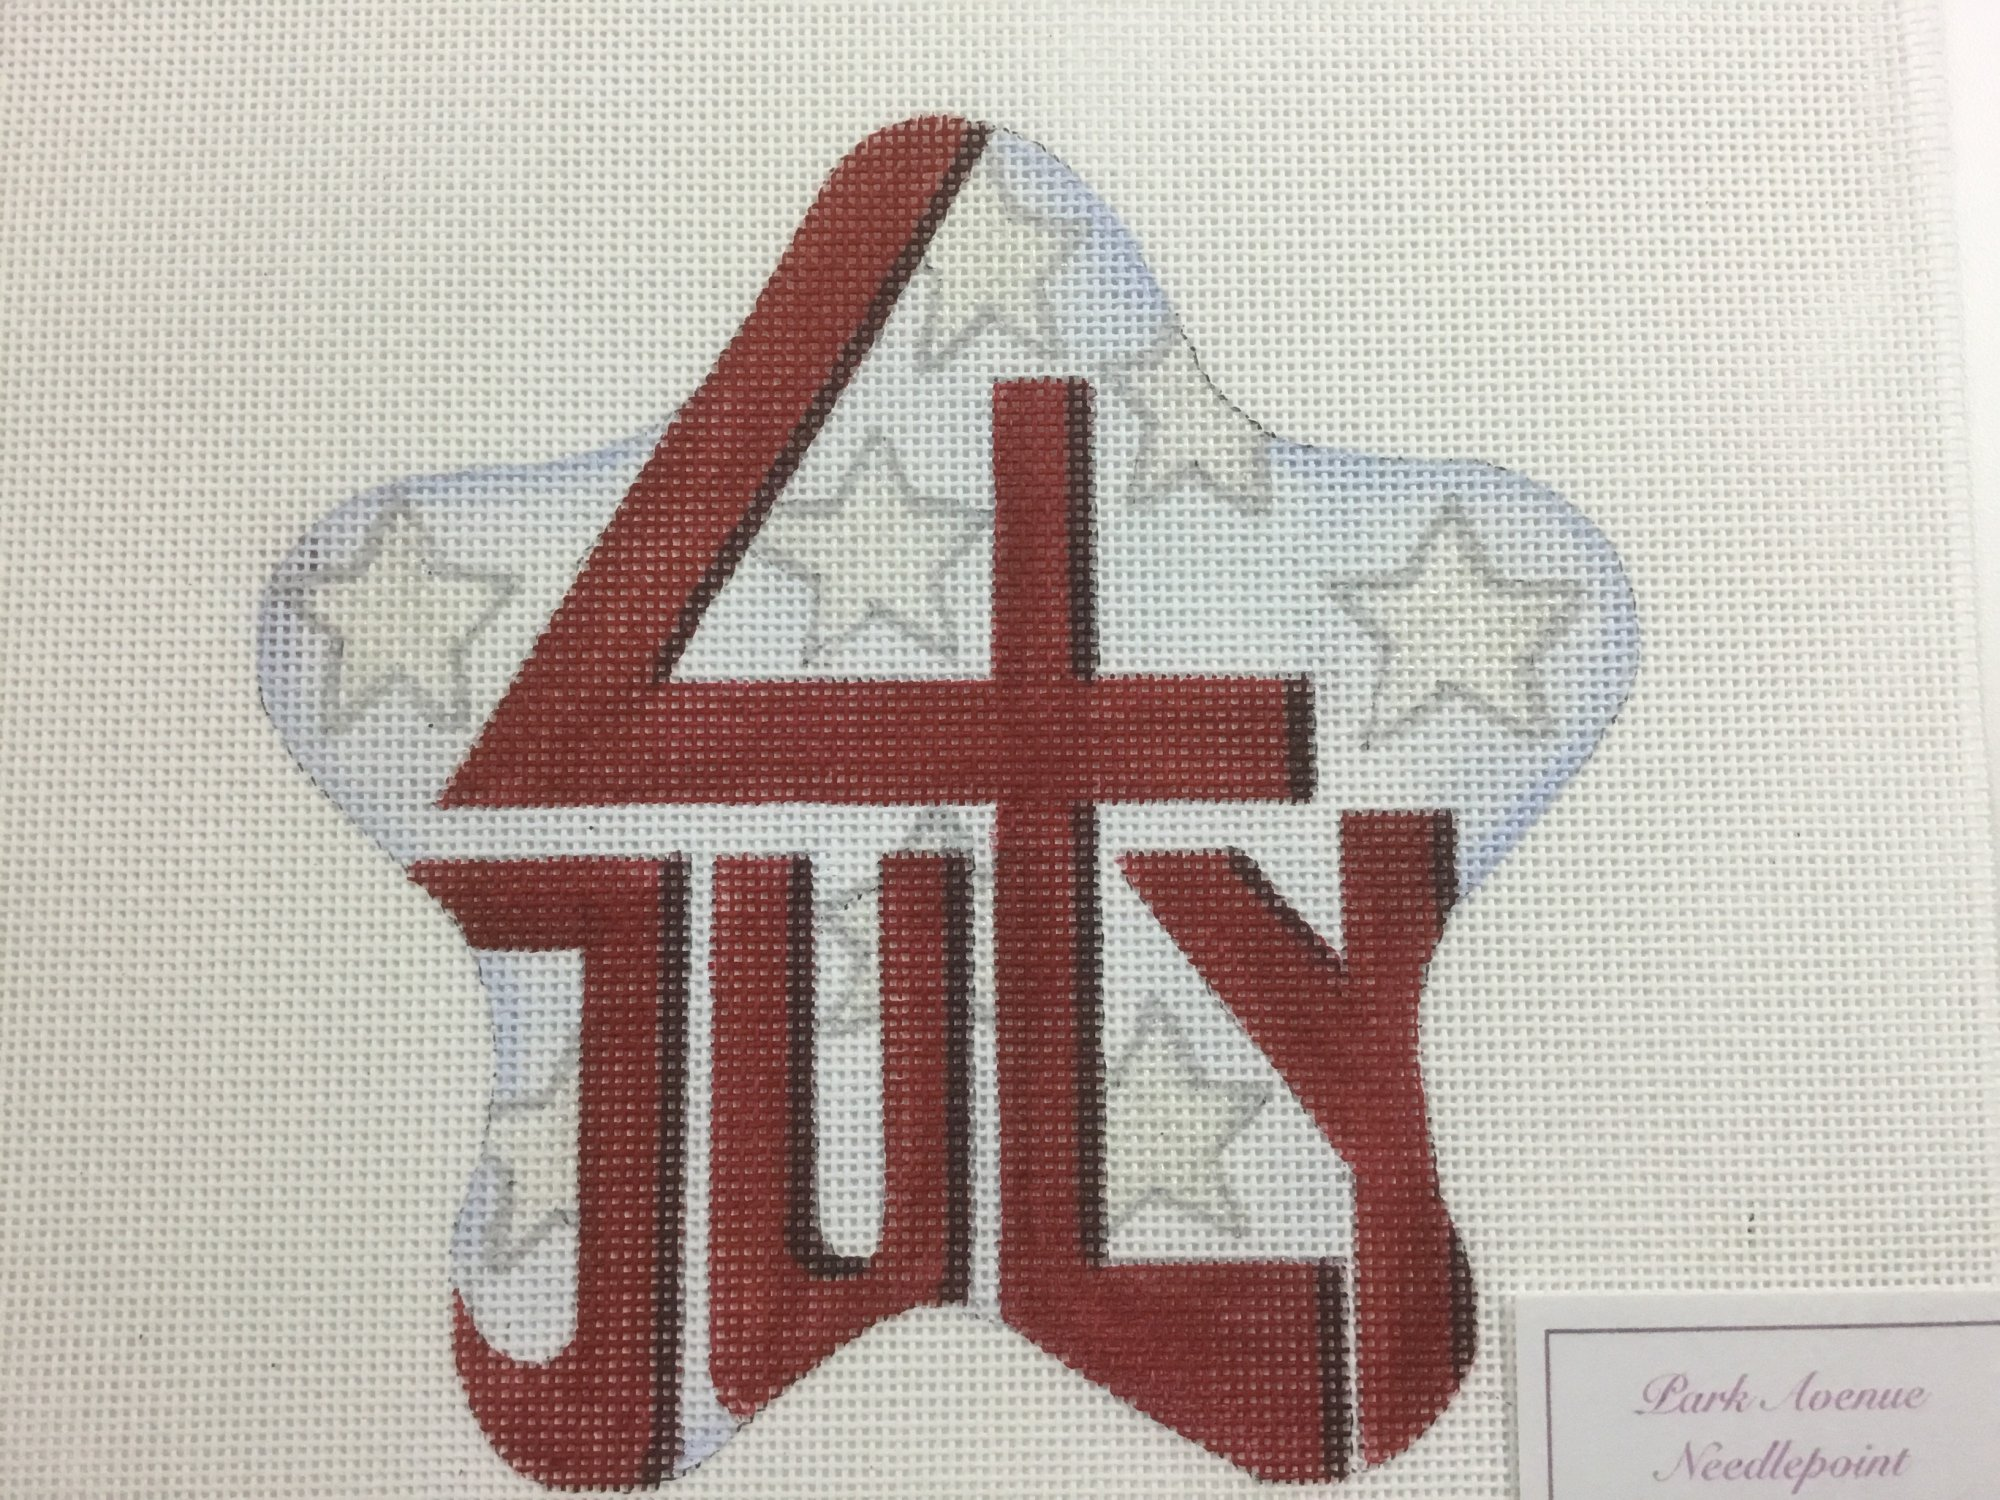 4th of July w/ Stars, 18 ct., 6 x 6